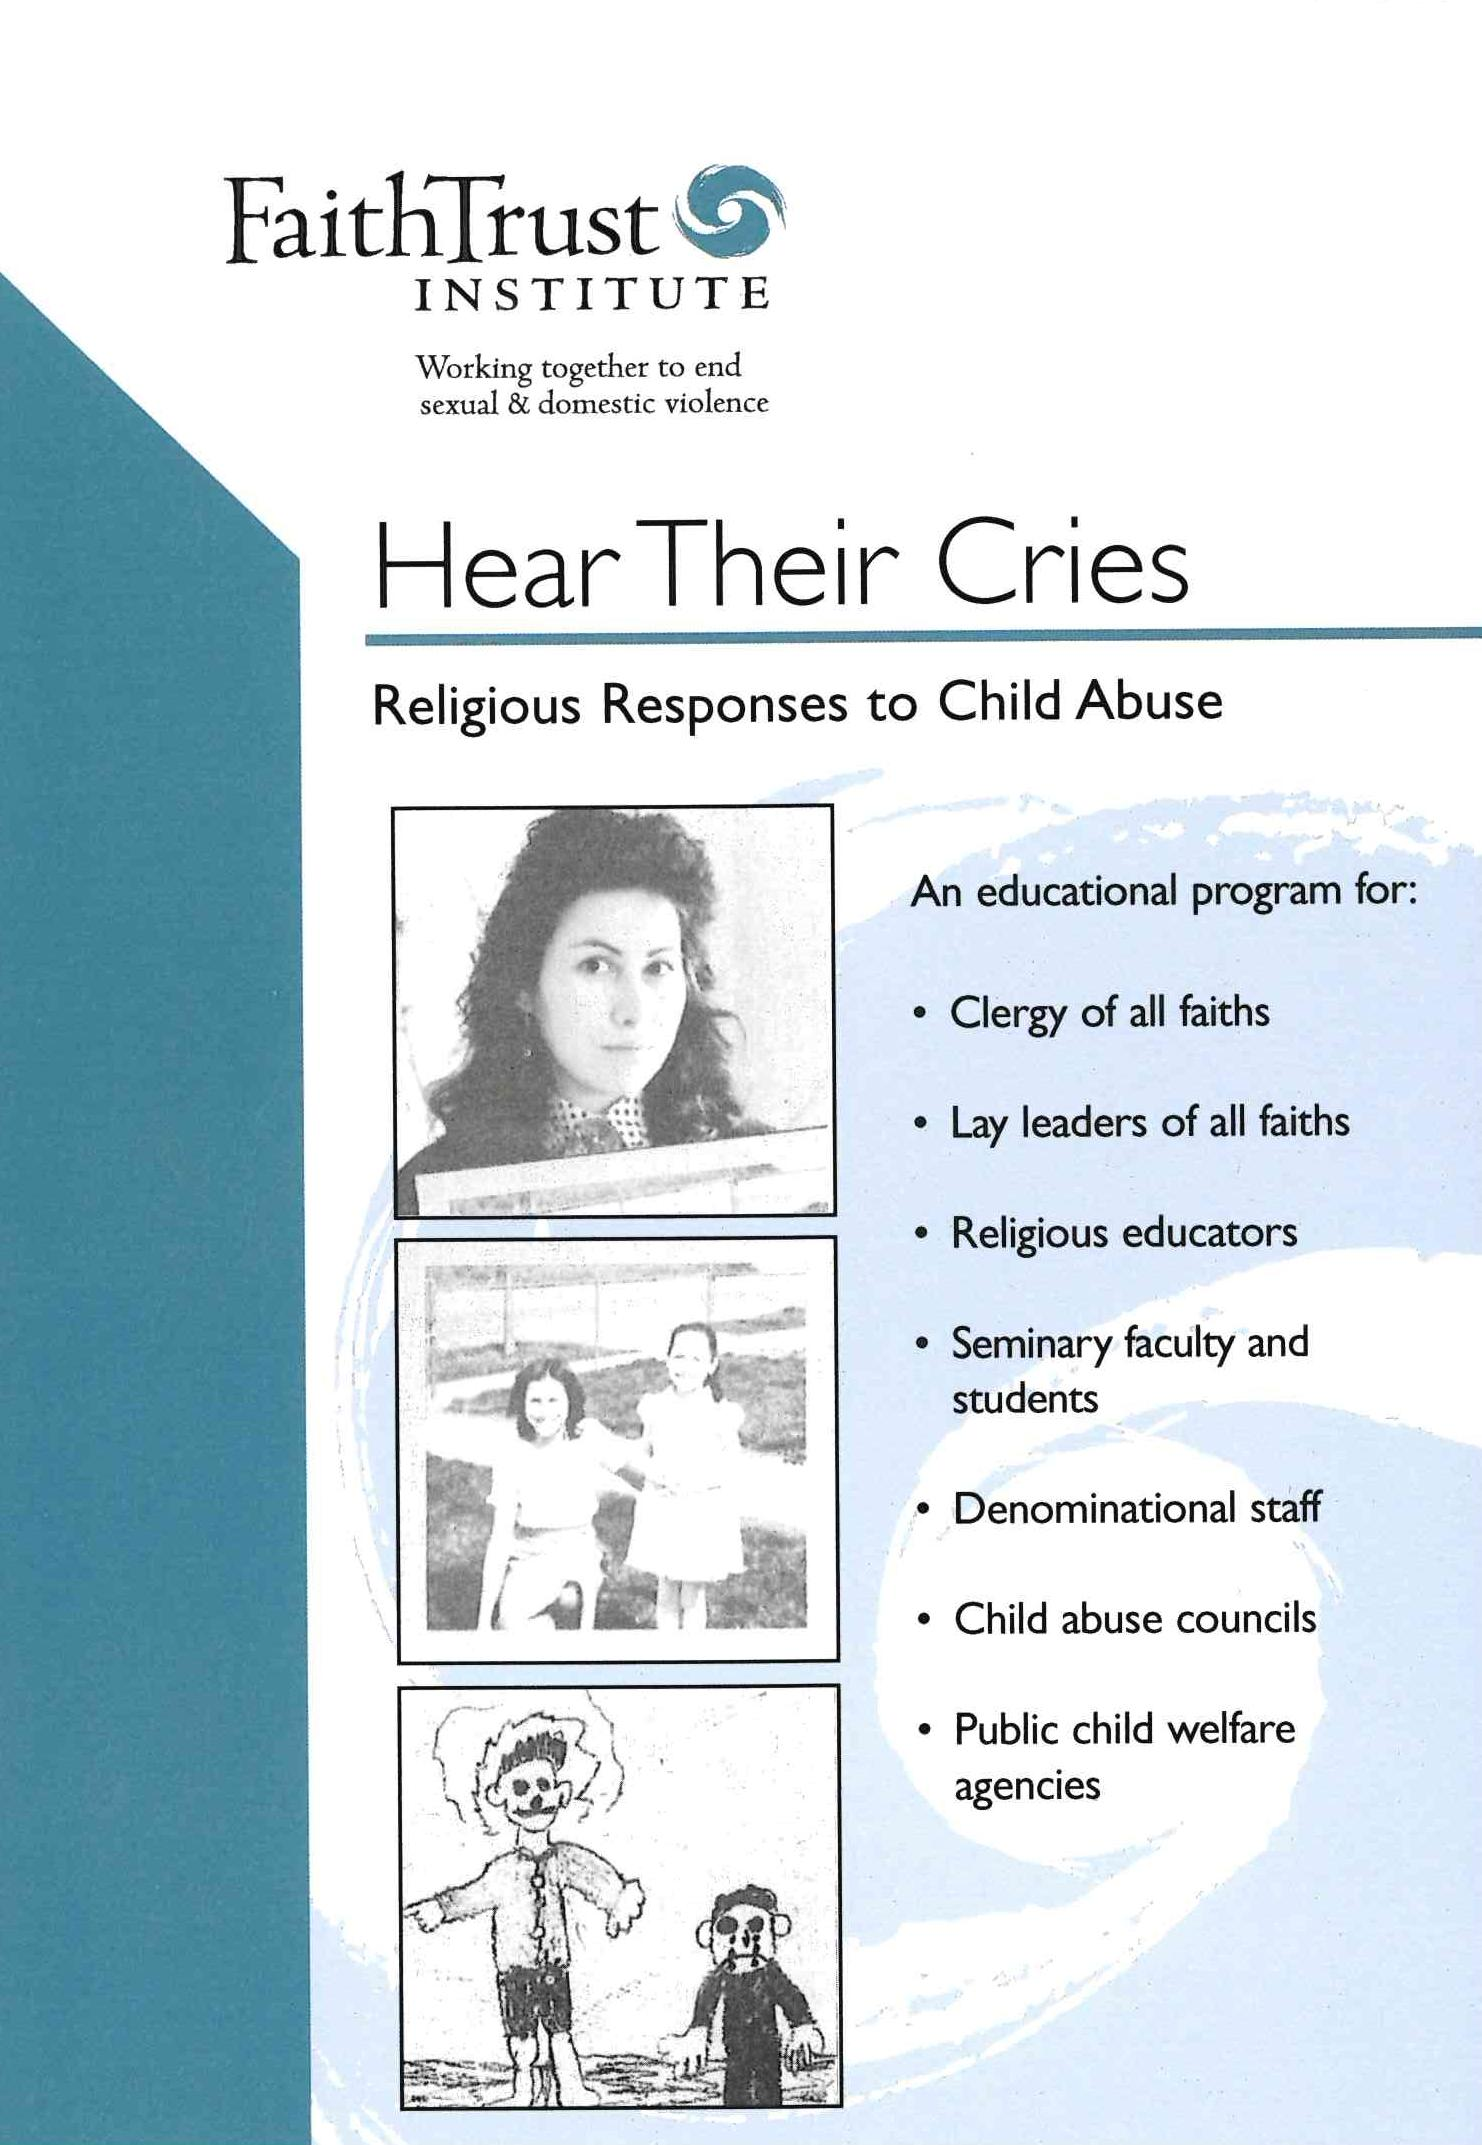 Hear Their Cries DVD